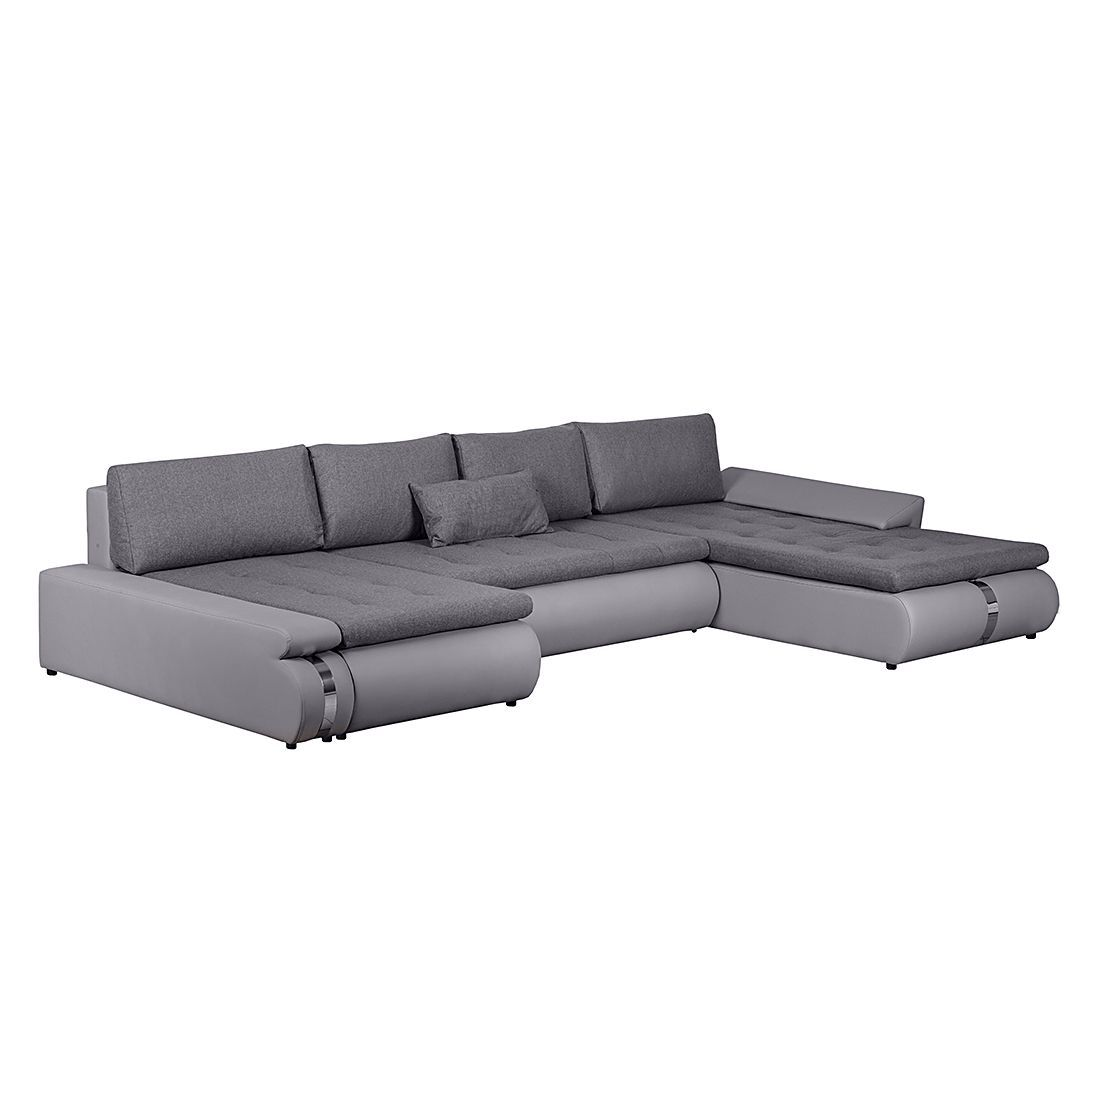 Canapé Convertible Design Gris Denver Pin By Ladendirekt On Sofas Couches Sofa Furniture Sofa Couch